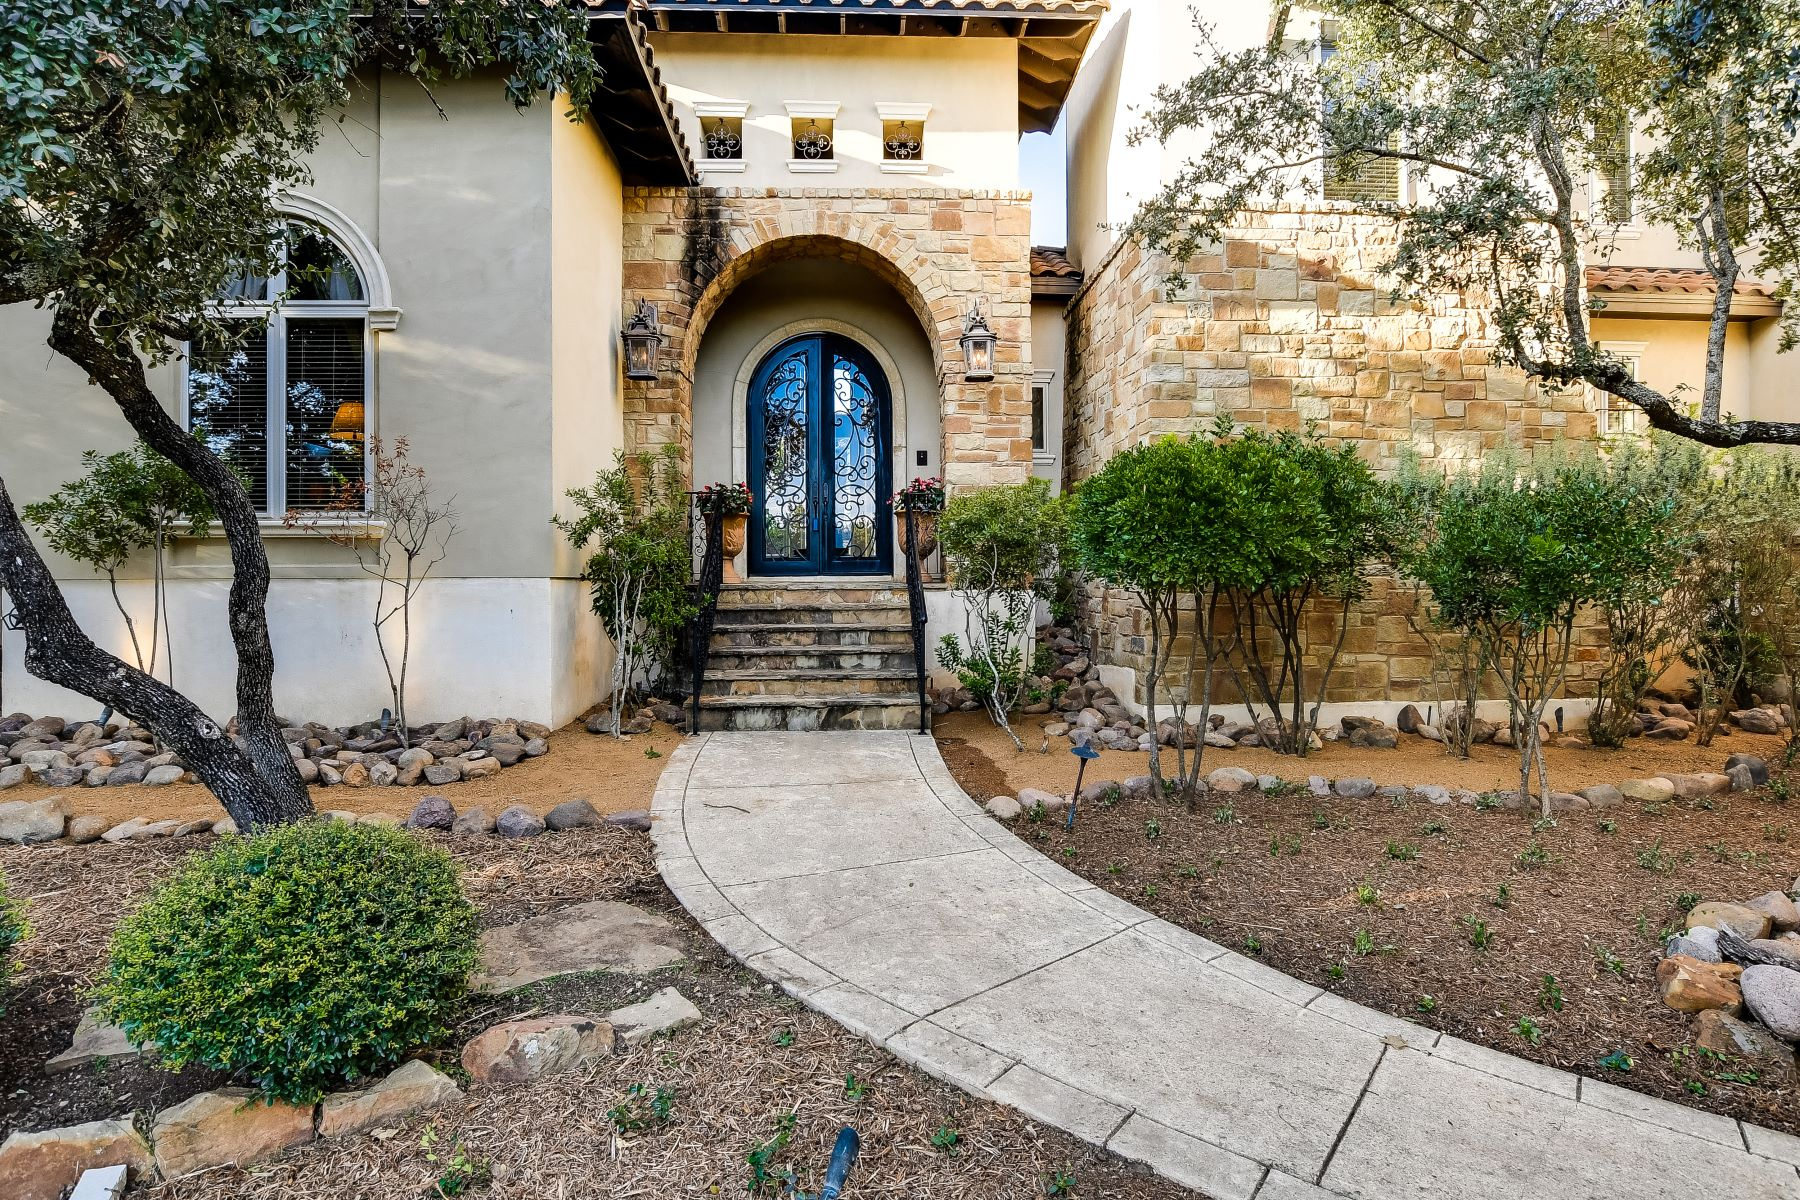 Single Family Homes for Active at Stunning Home in Anaqua Springs Ranch 11215 Caliza Bluff Boerne, Texas 78006 United States